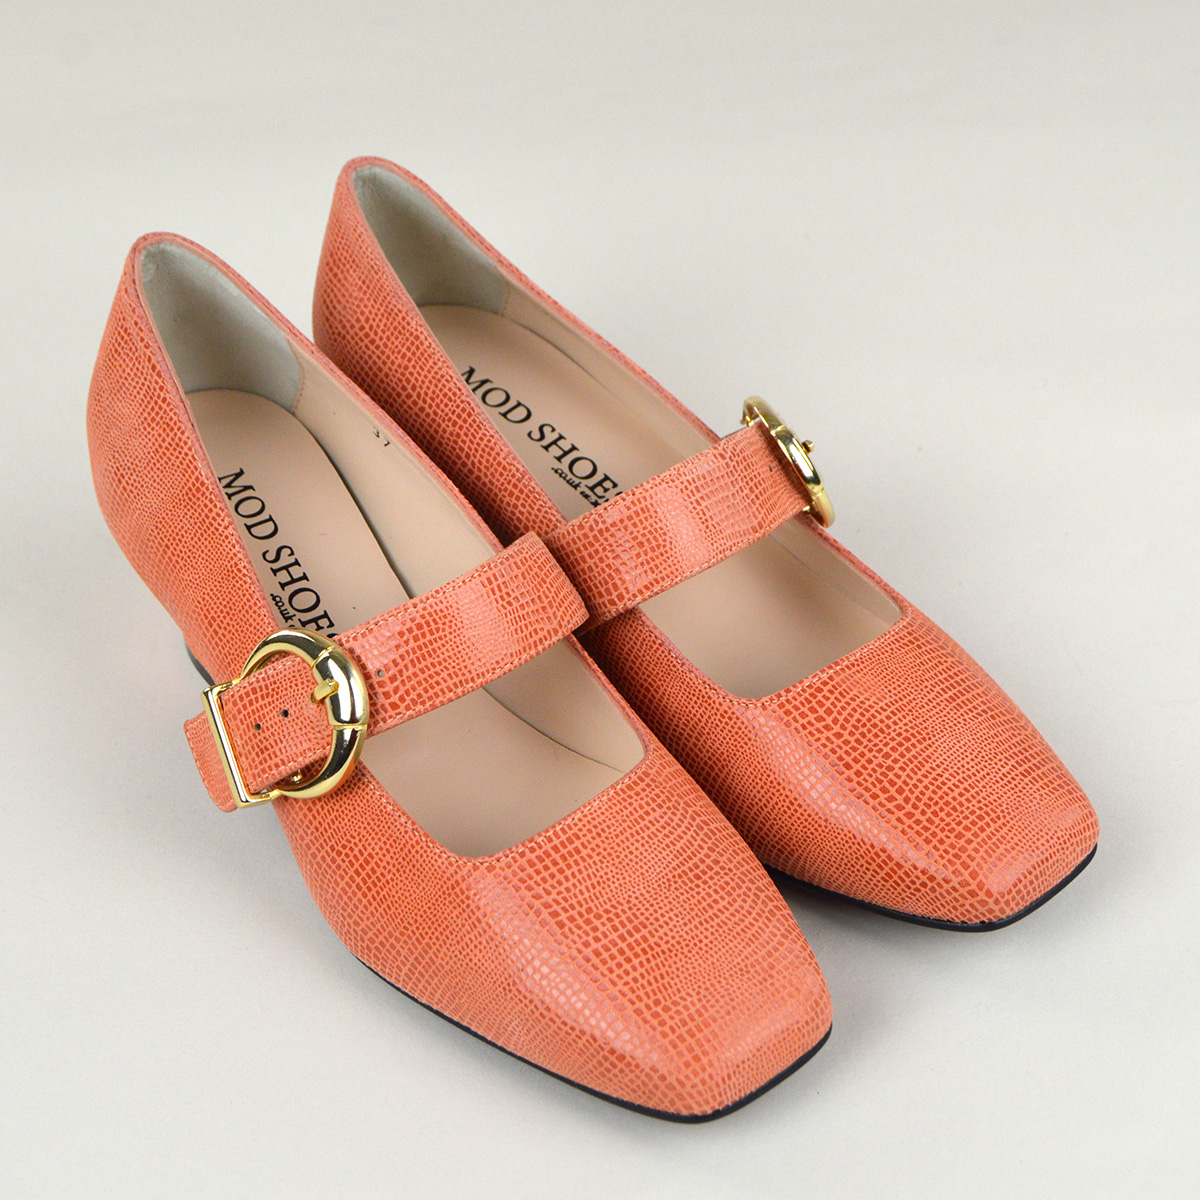 e1521df9b04 The Lola In Coral Textured Effect Leather - Mary Jane 60s Style Ladies  Shoes By Mod Shoes